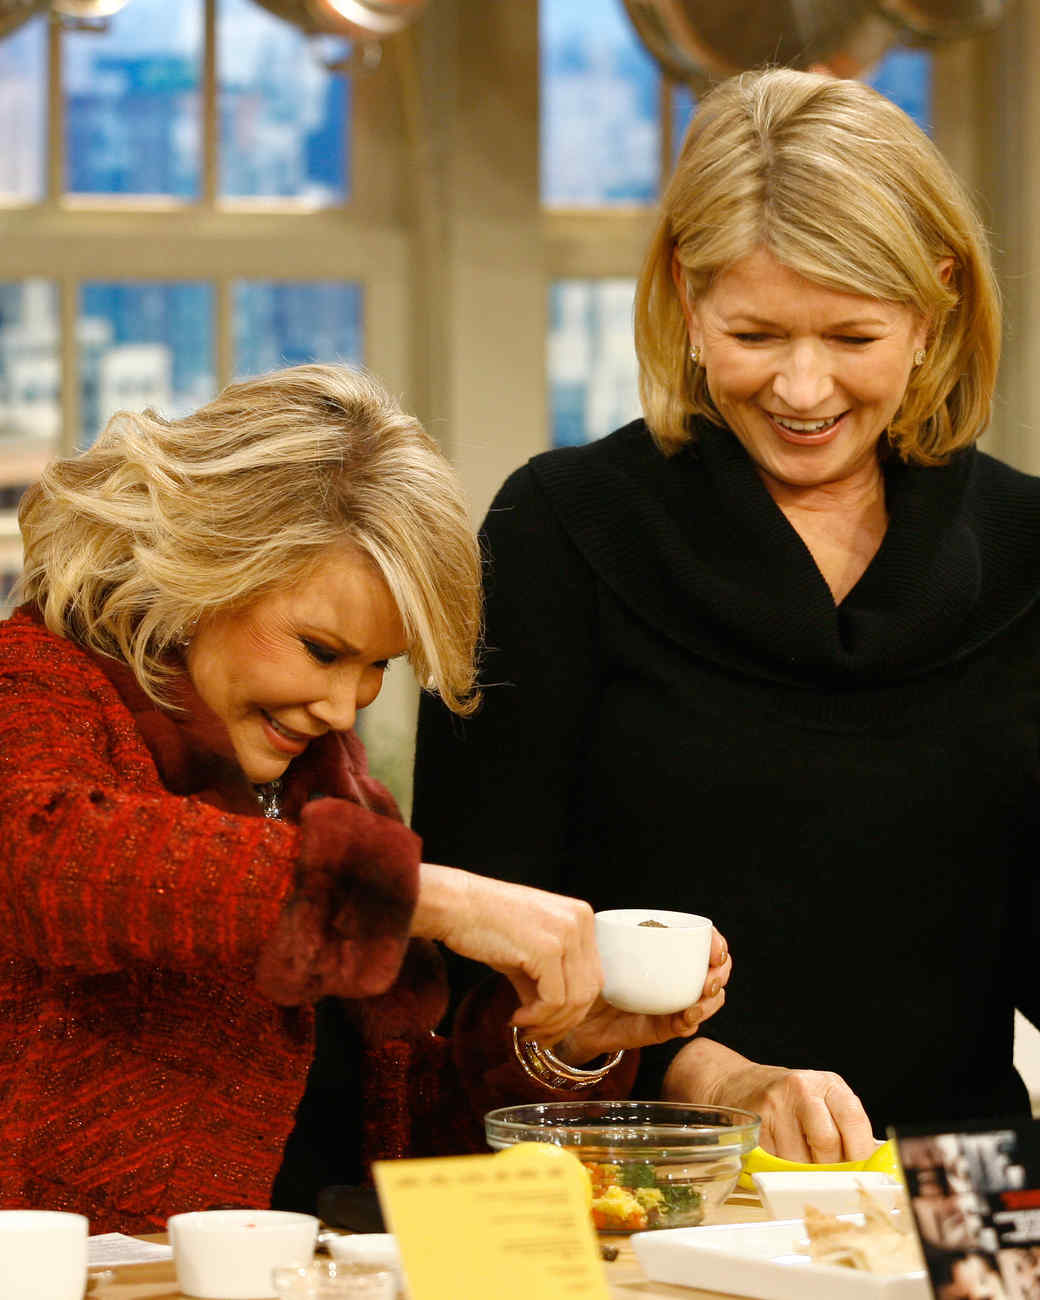 joan-rivers-martha-stewart-q5v5758.jpg